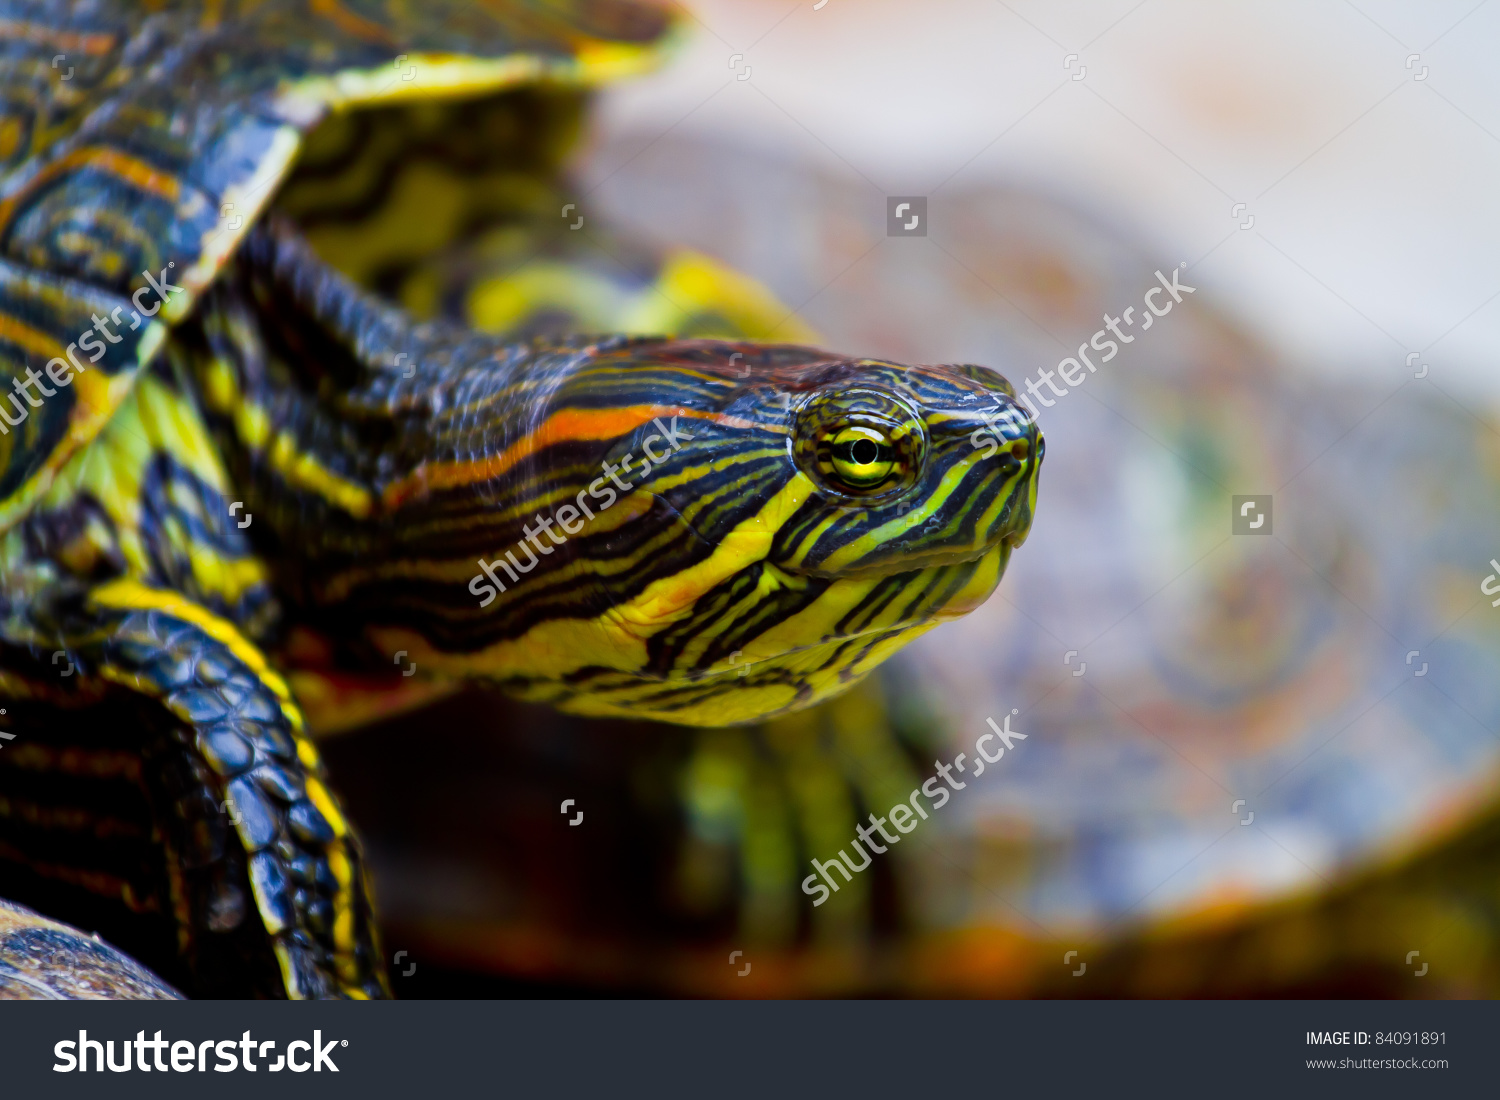 Close Up Of A Red Eared Mexican Turtle As It Clambers Over Another.